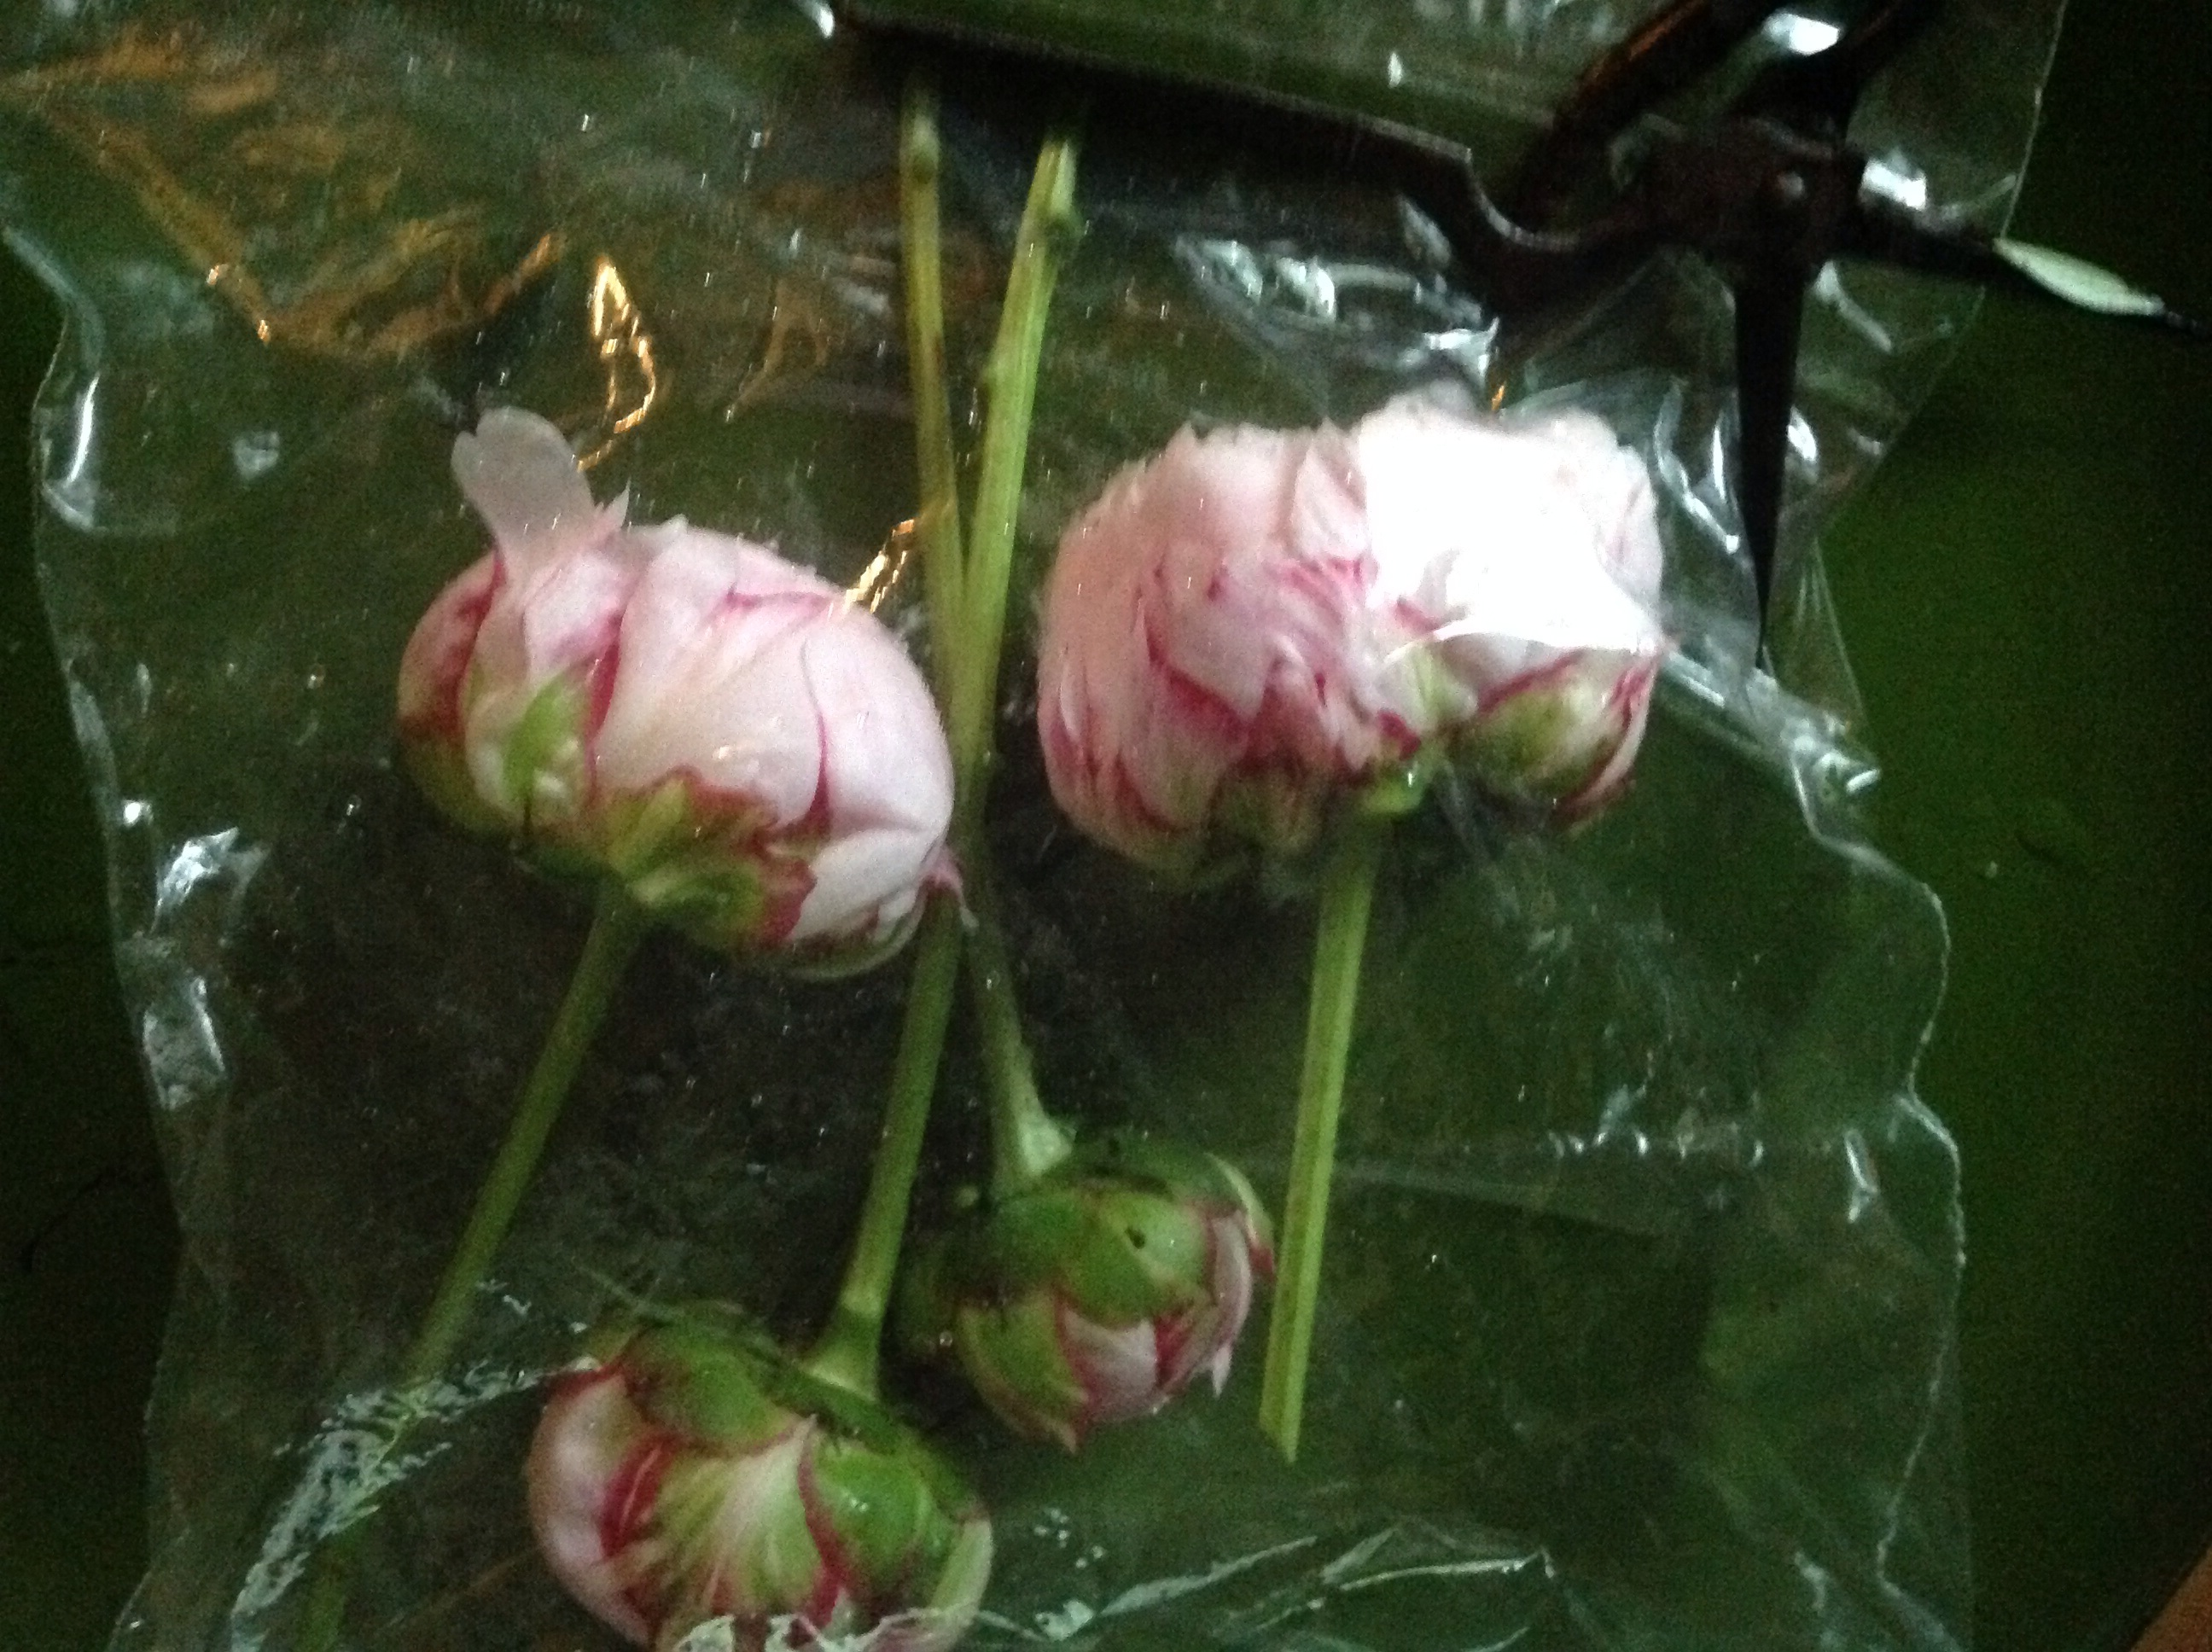 cut peonies going into storage foliage removed in a ziplock bag - How To Cut Peonies